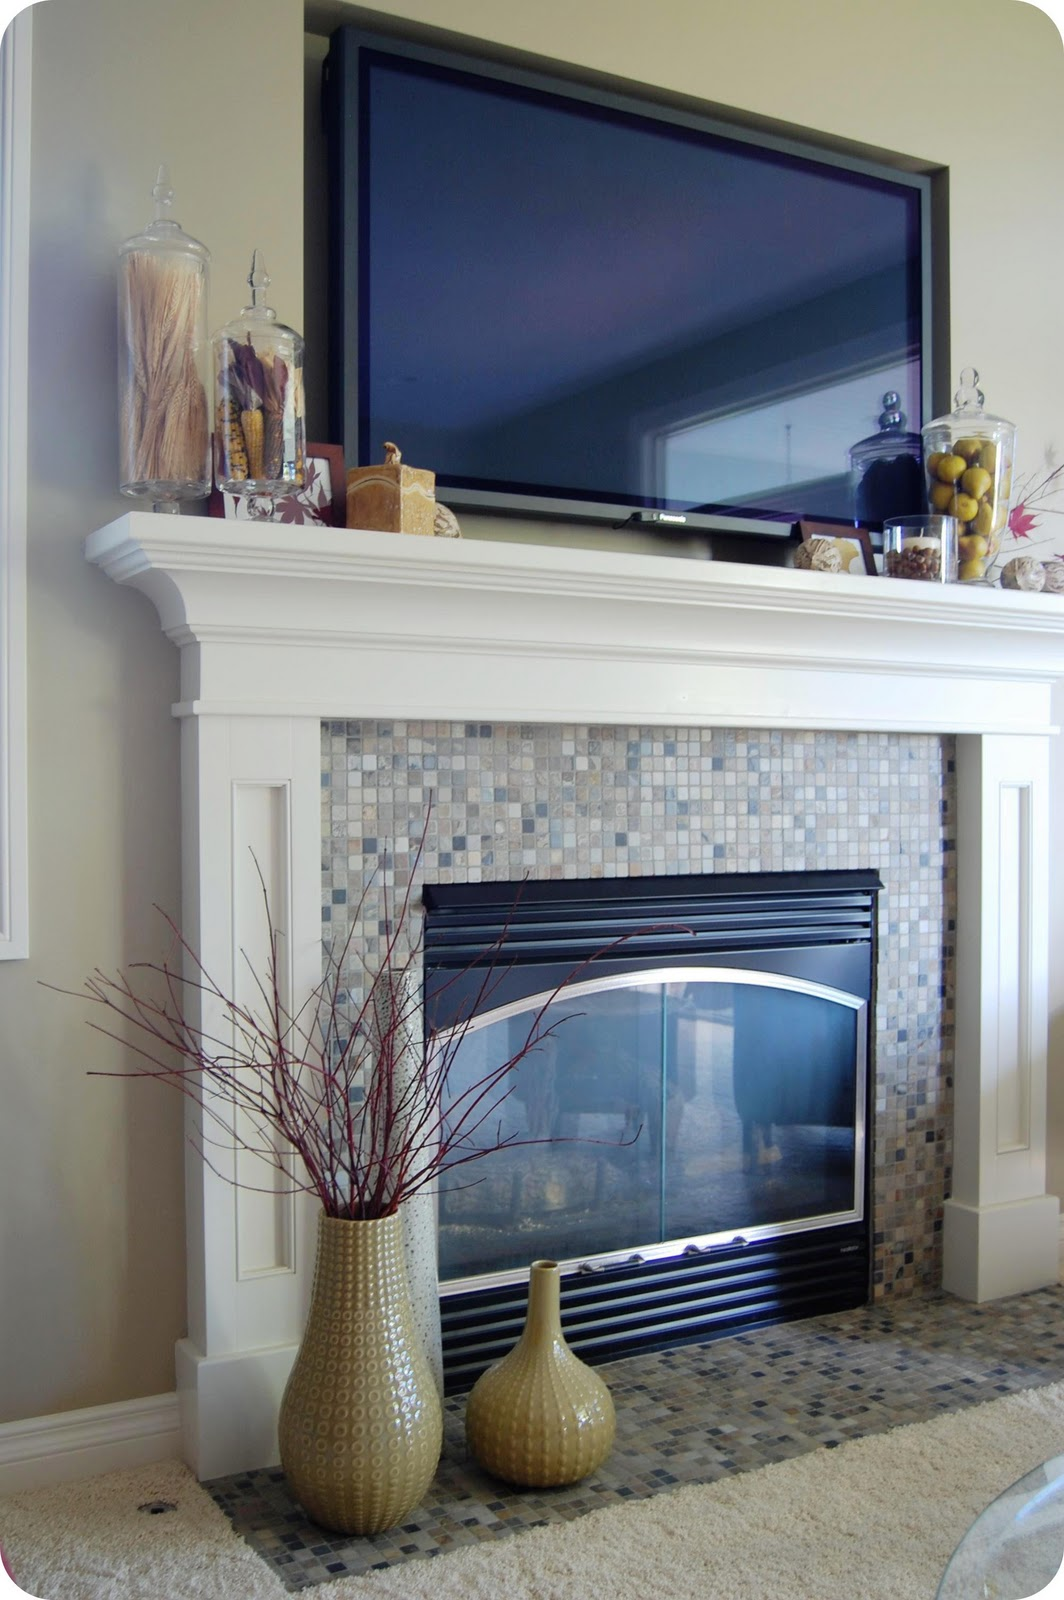 33 shades of green decorating around the tv - Fireplace mantel decor ideas ...